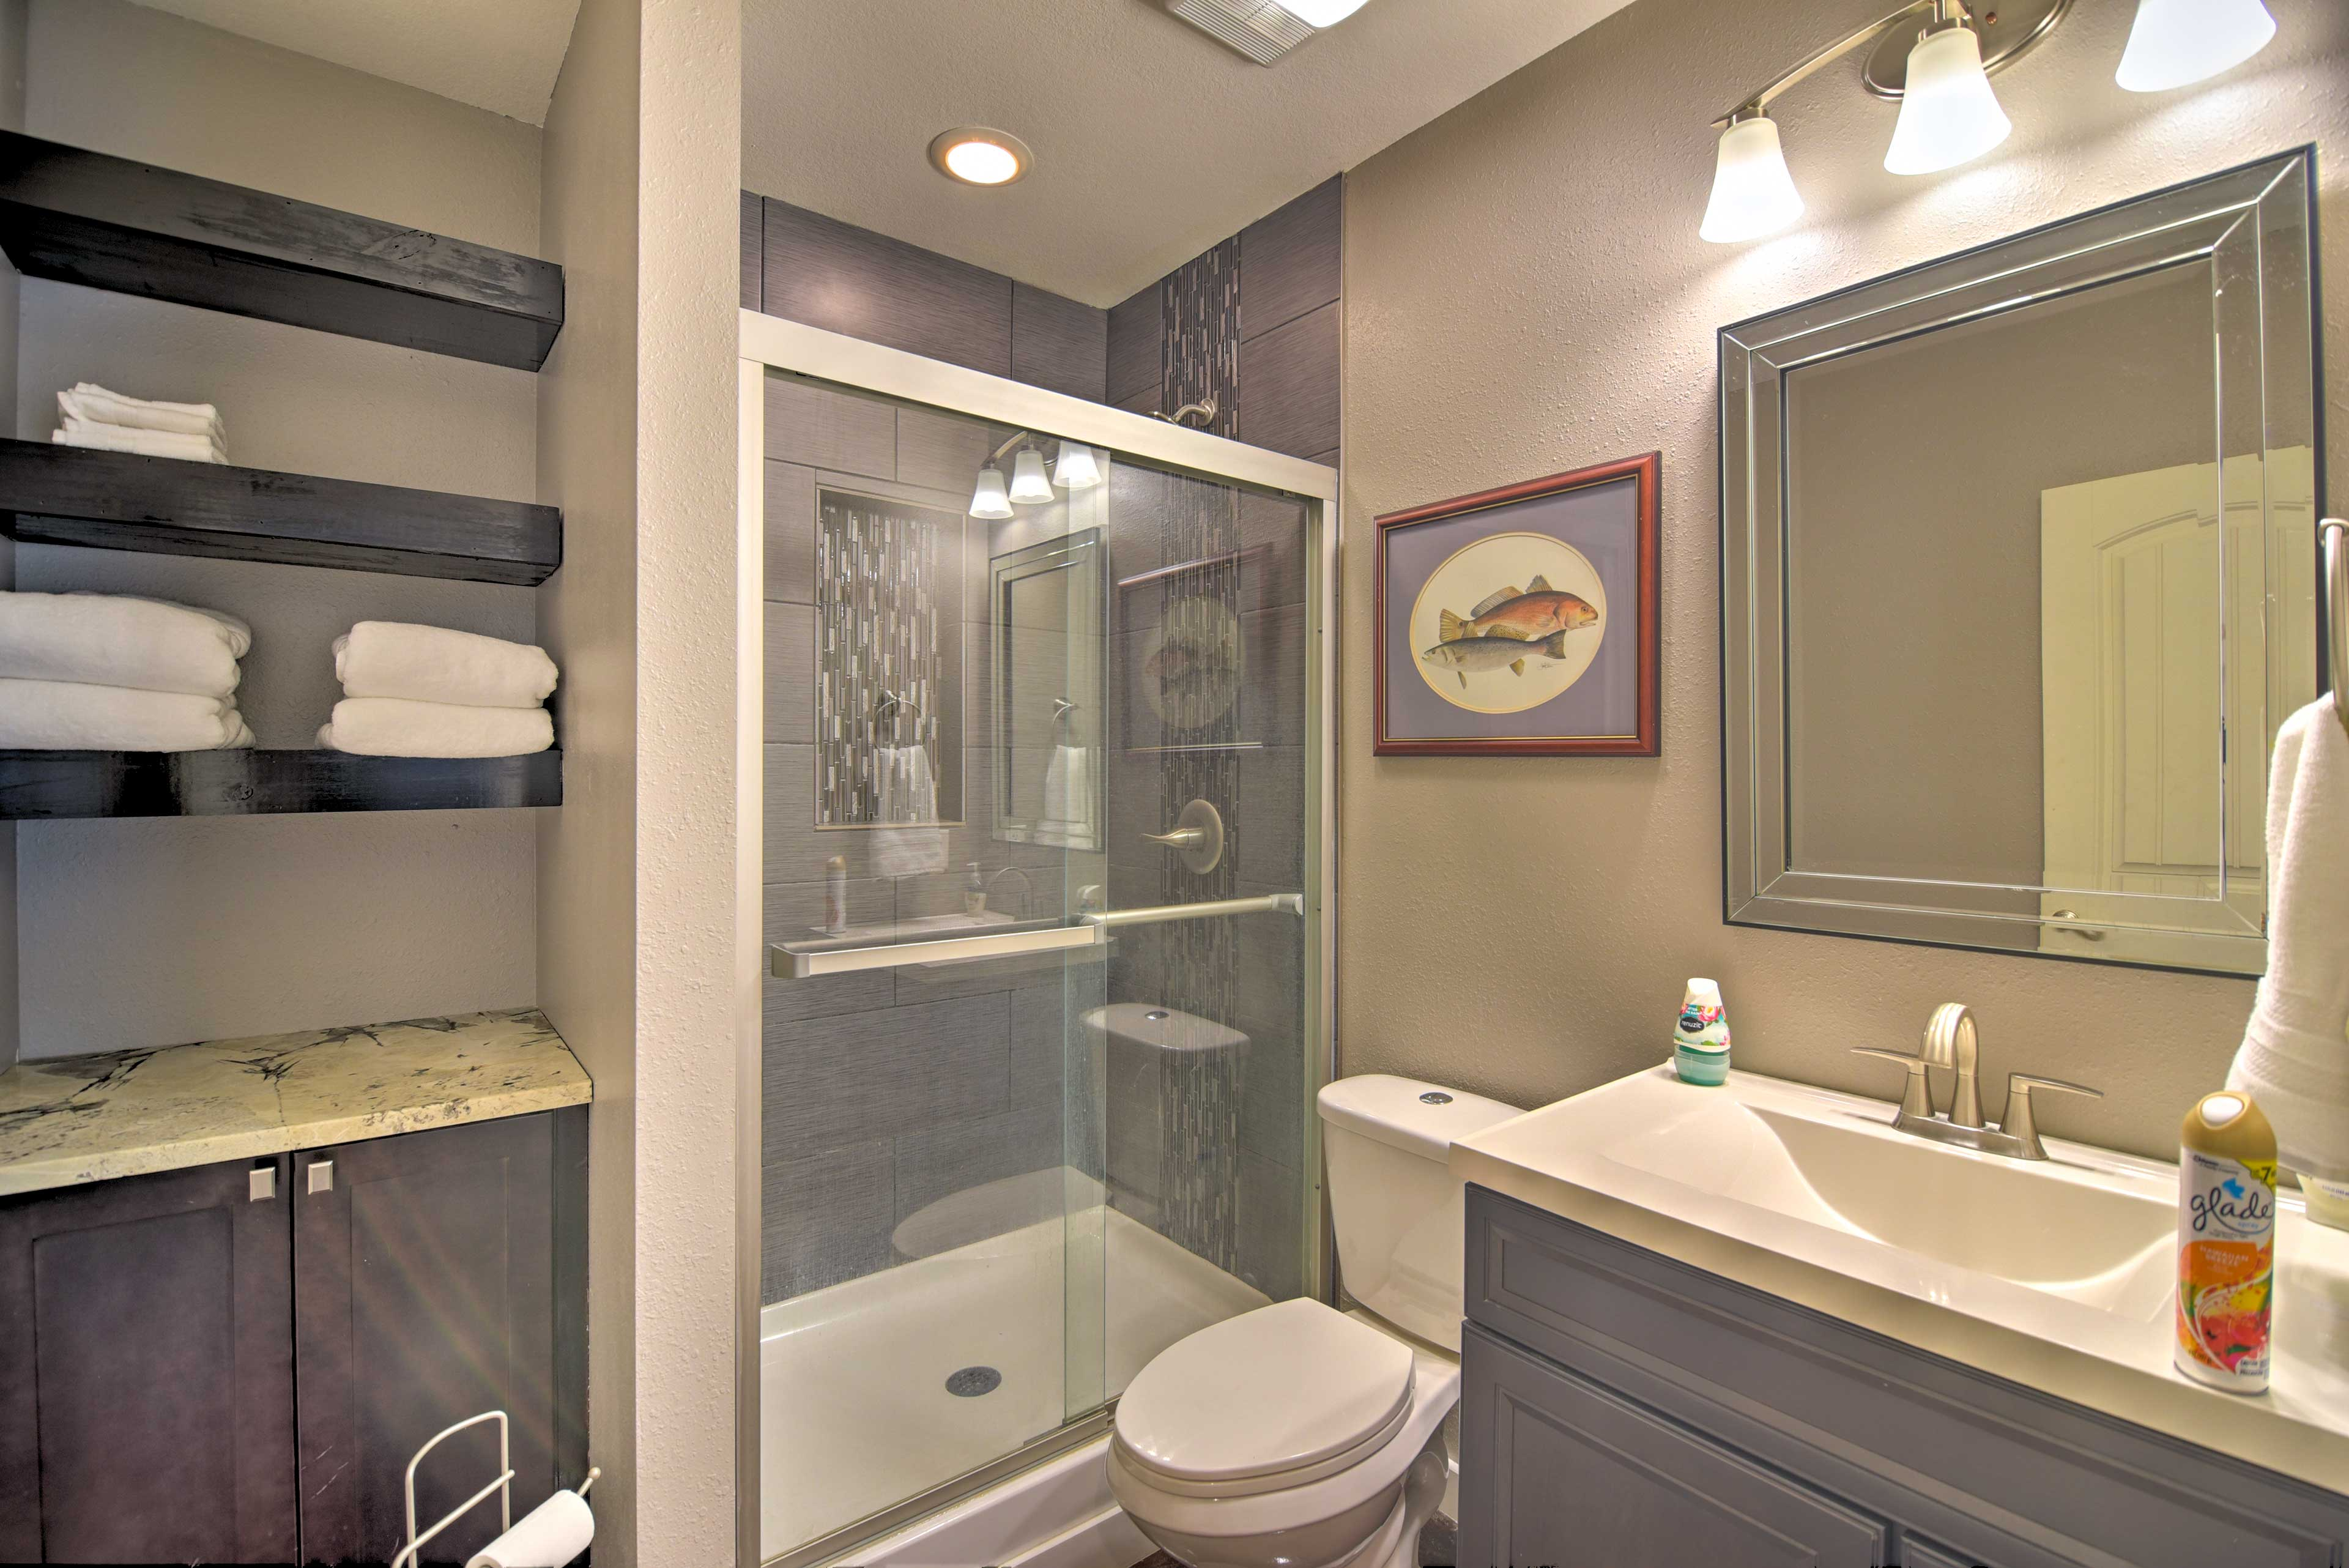 Fresh towels are provided for your stay!